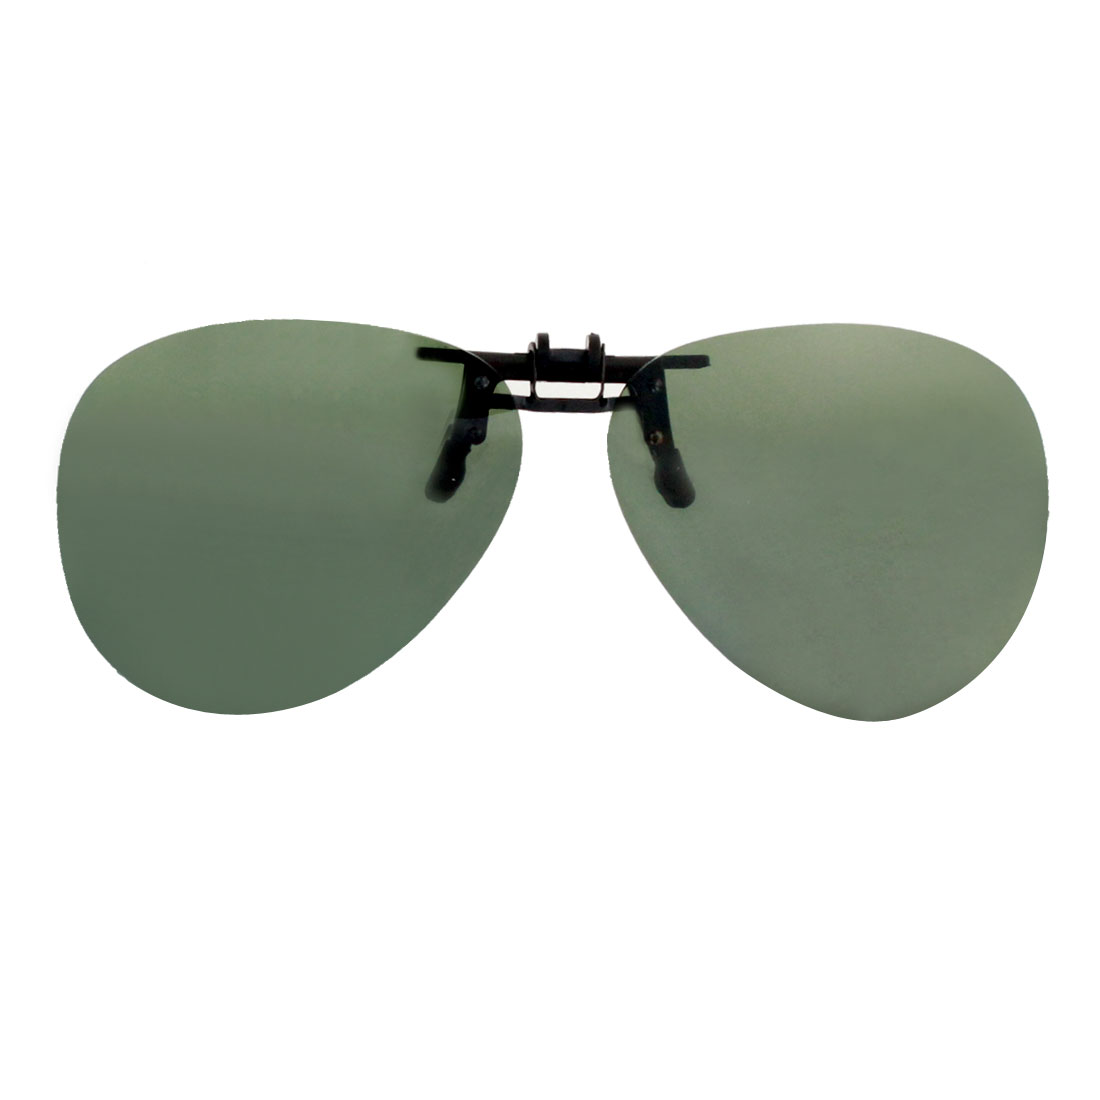 Unisex Teardrop Shape Green Lens Rimless Anti Glare Clip Polarized Sunglasses Eyeglasses